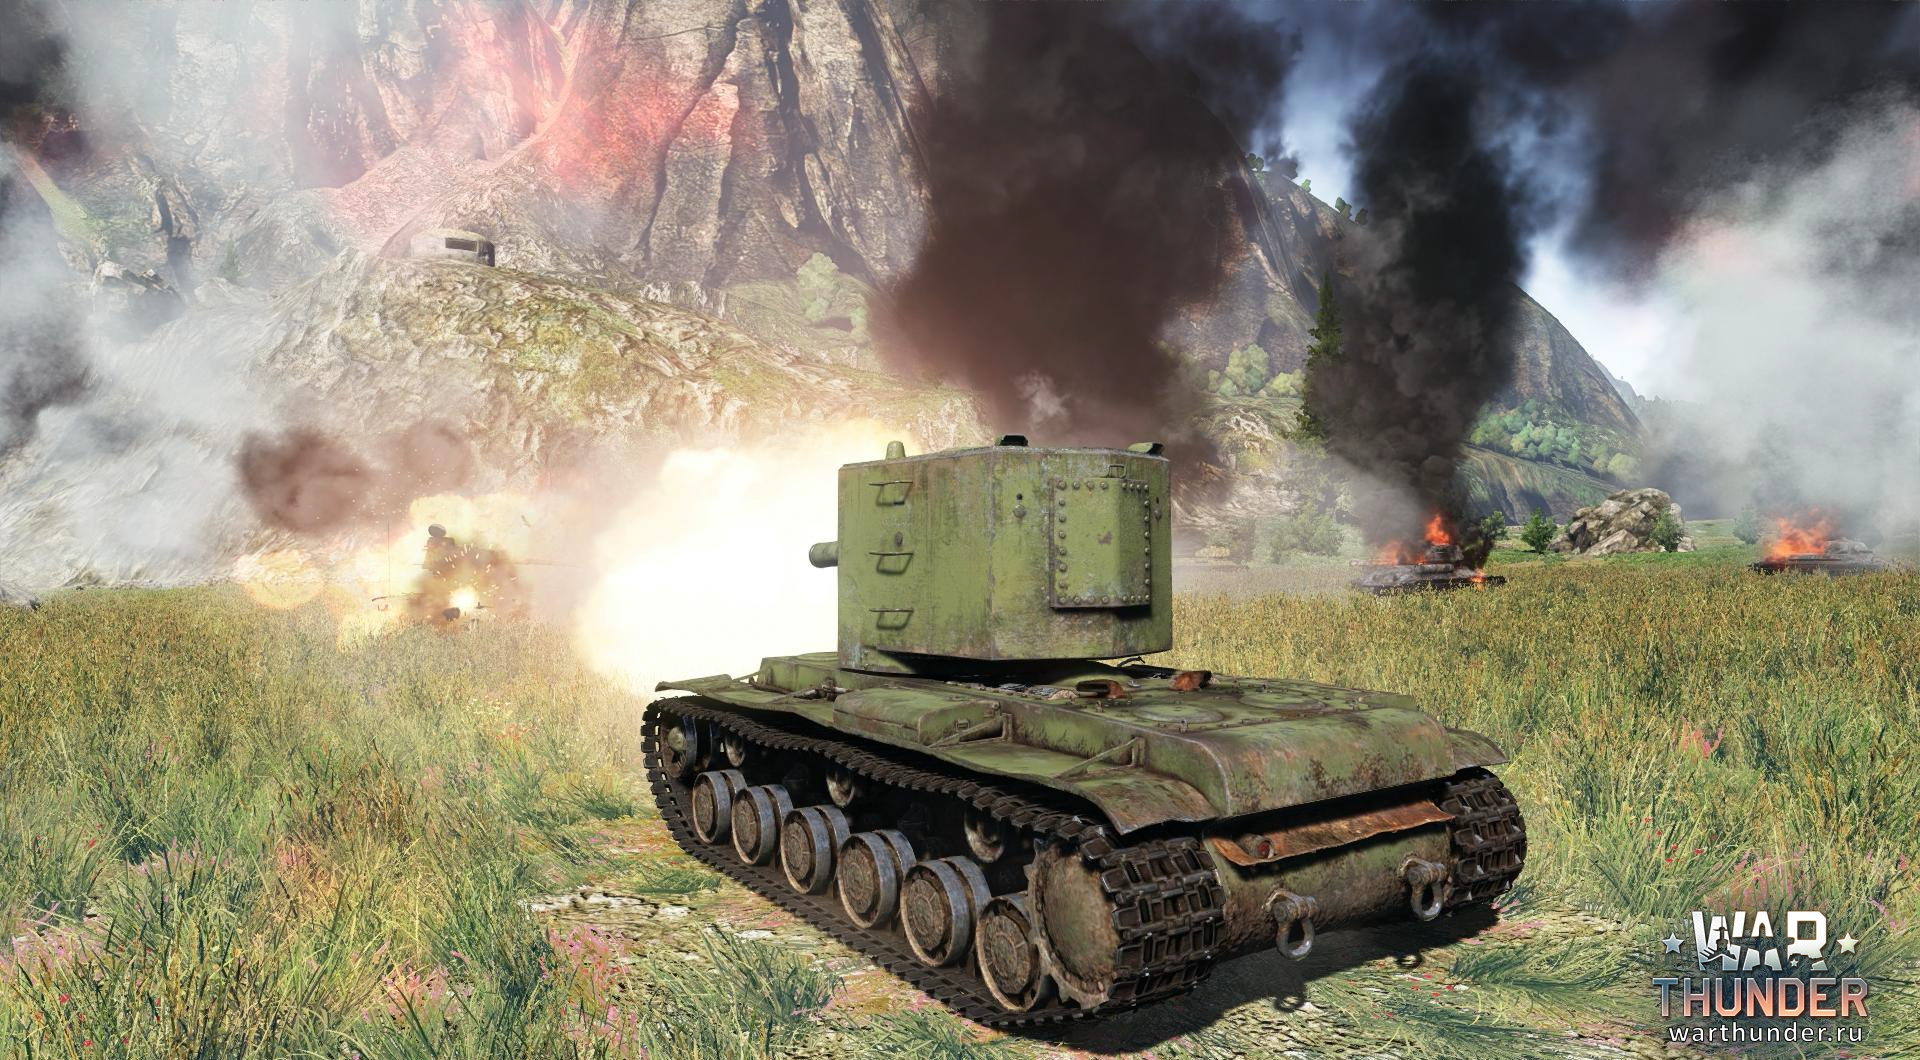 Снежинка world of tanks